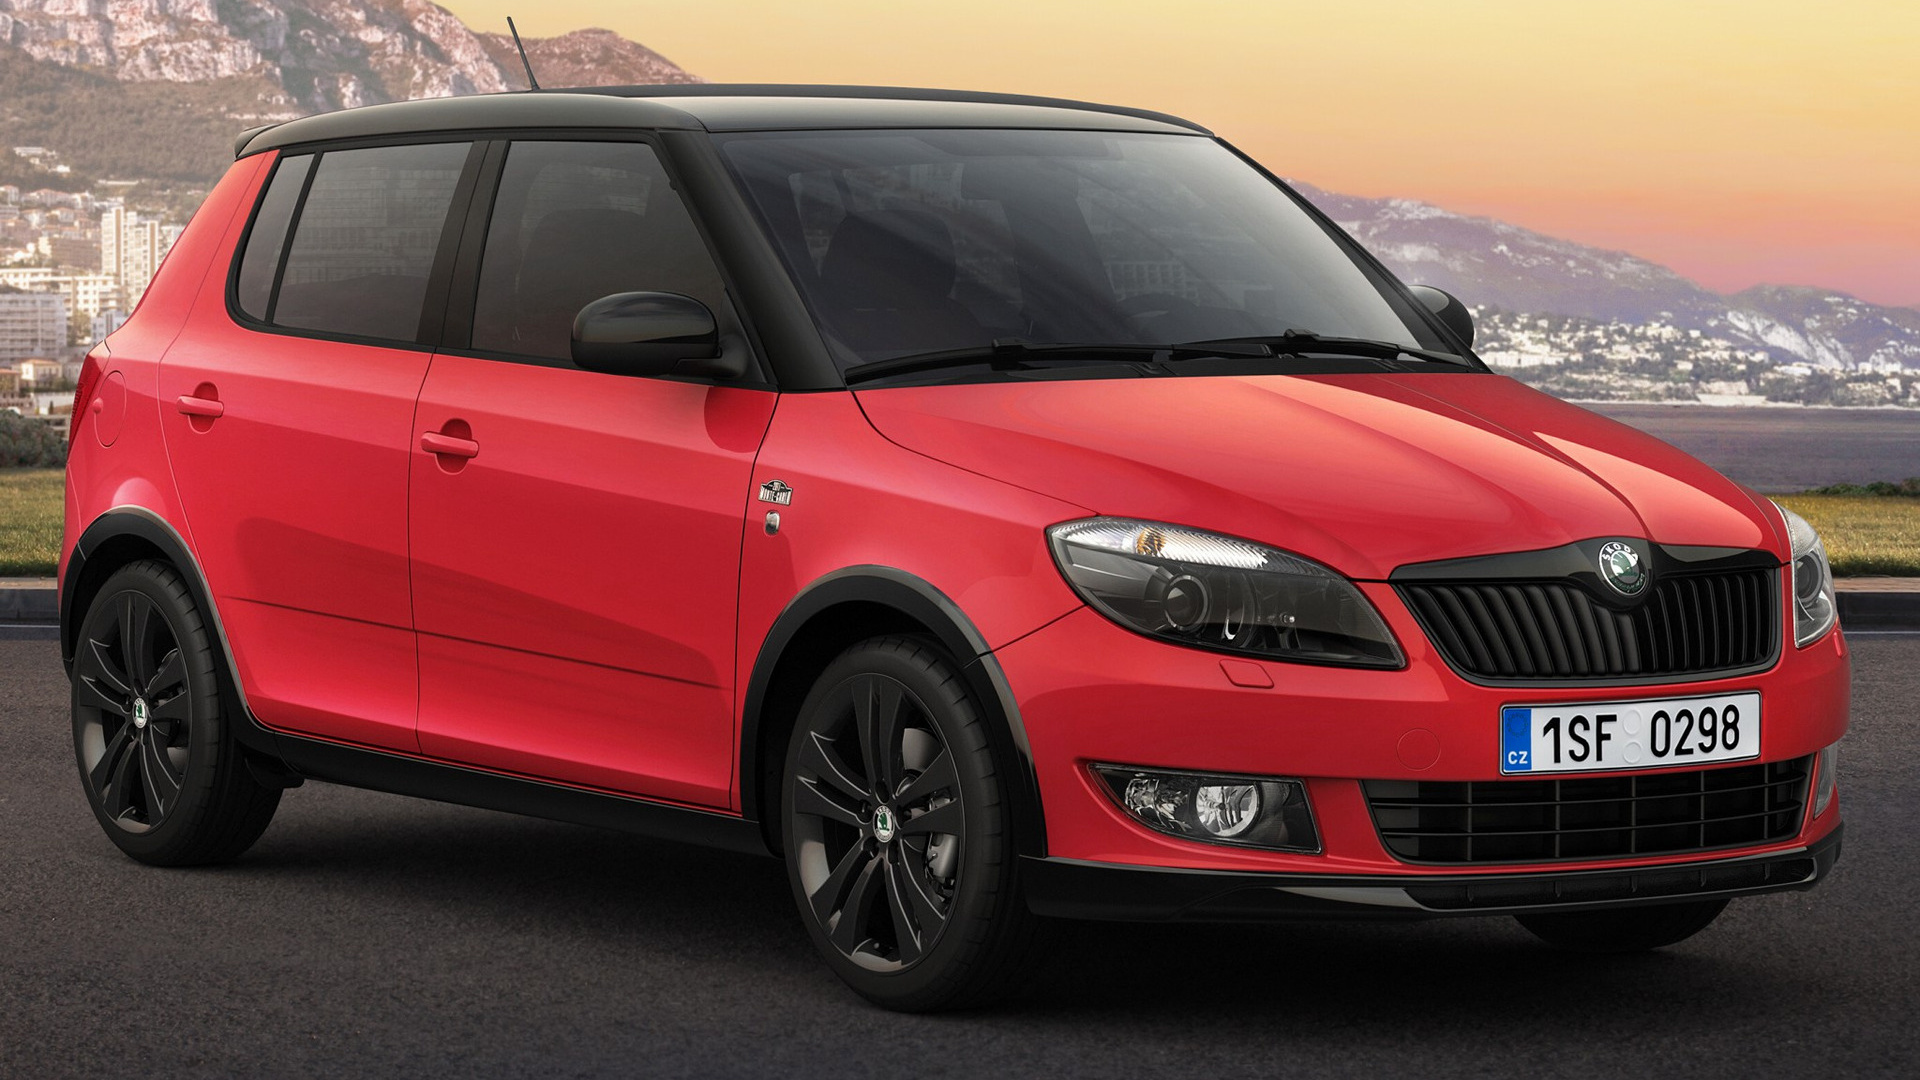 skoda fabia monte carlo 2011 wallpapers and hd images. Black Bedroom Furniture Sets. Home Design Ideas